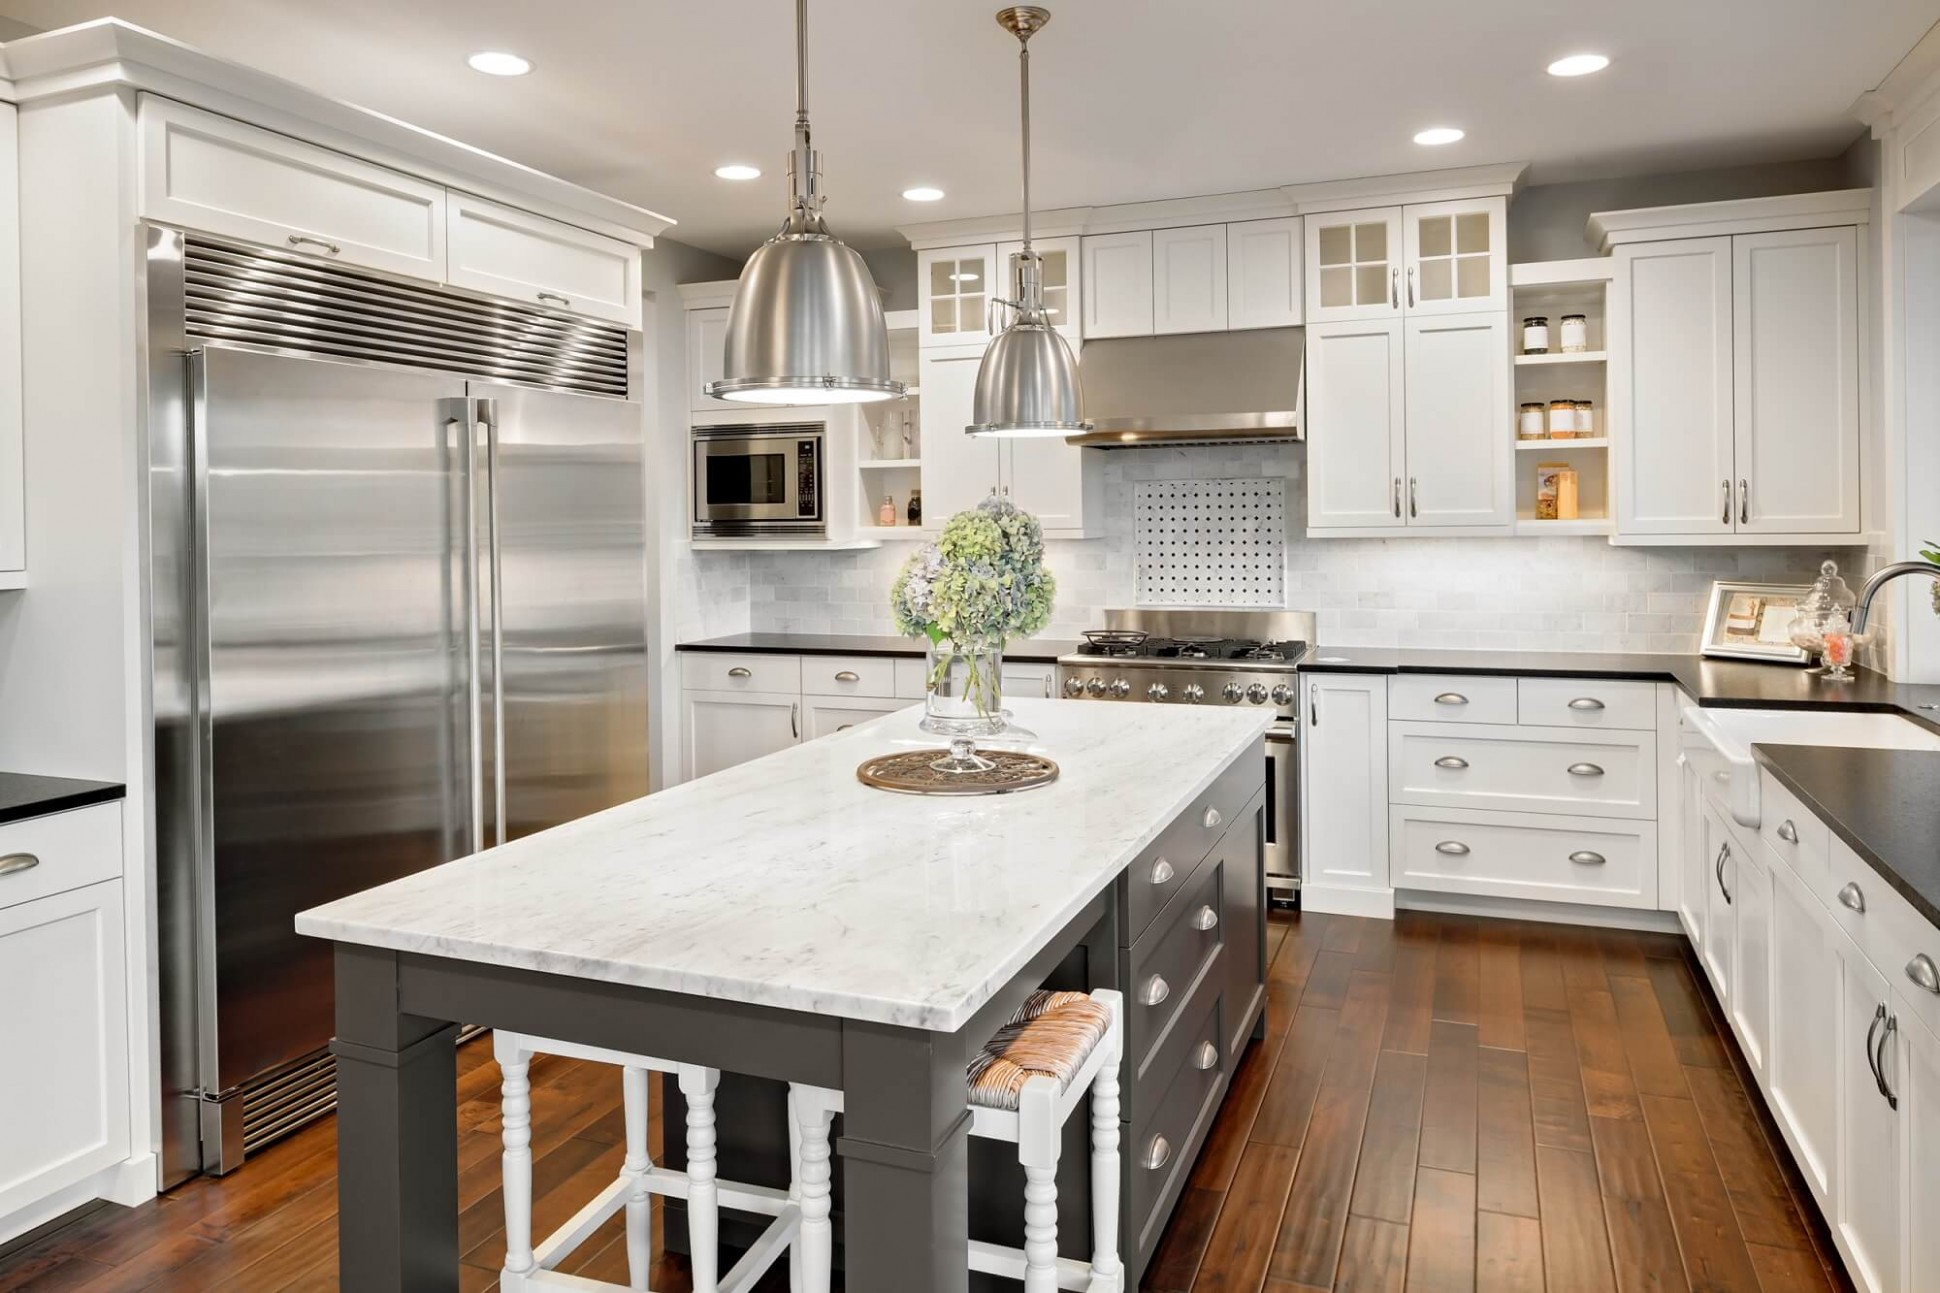 Install Floors or Cabinets First? Kitchen Reno Tips  - Matching Kitchen Cabinets And Flooring